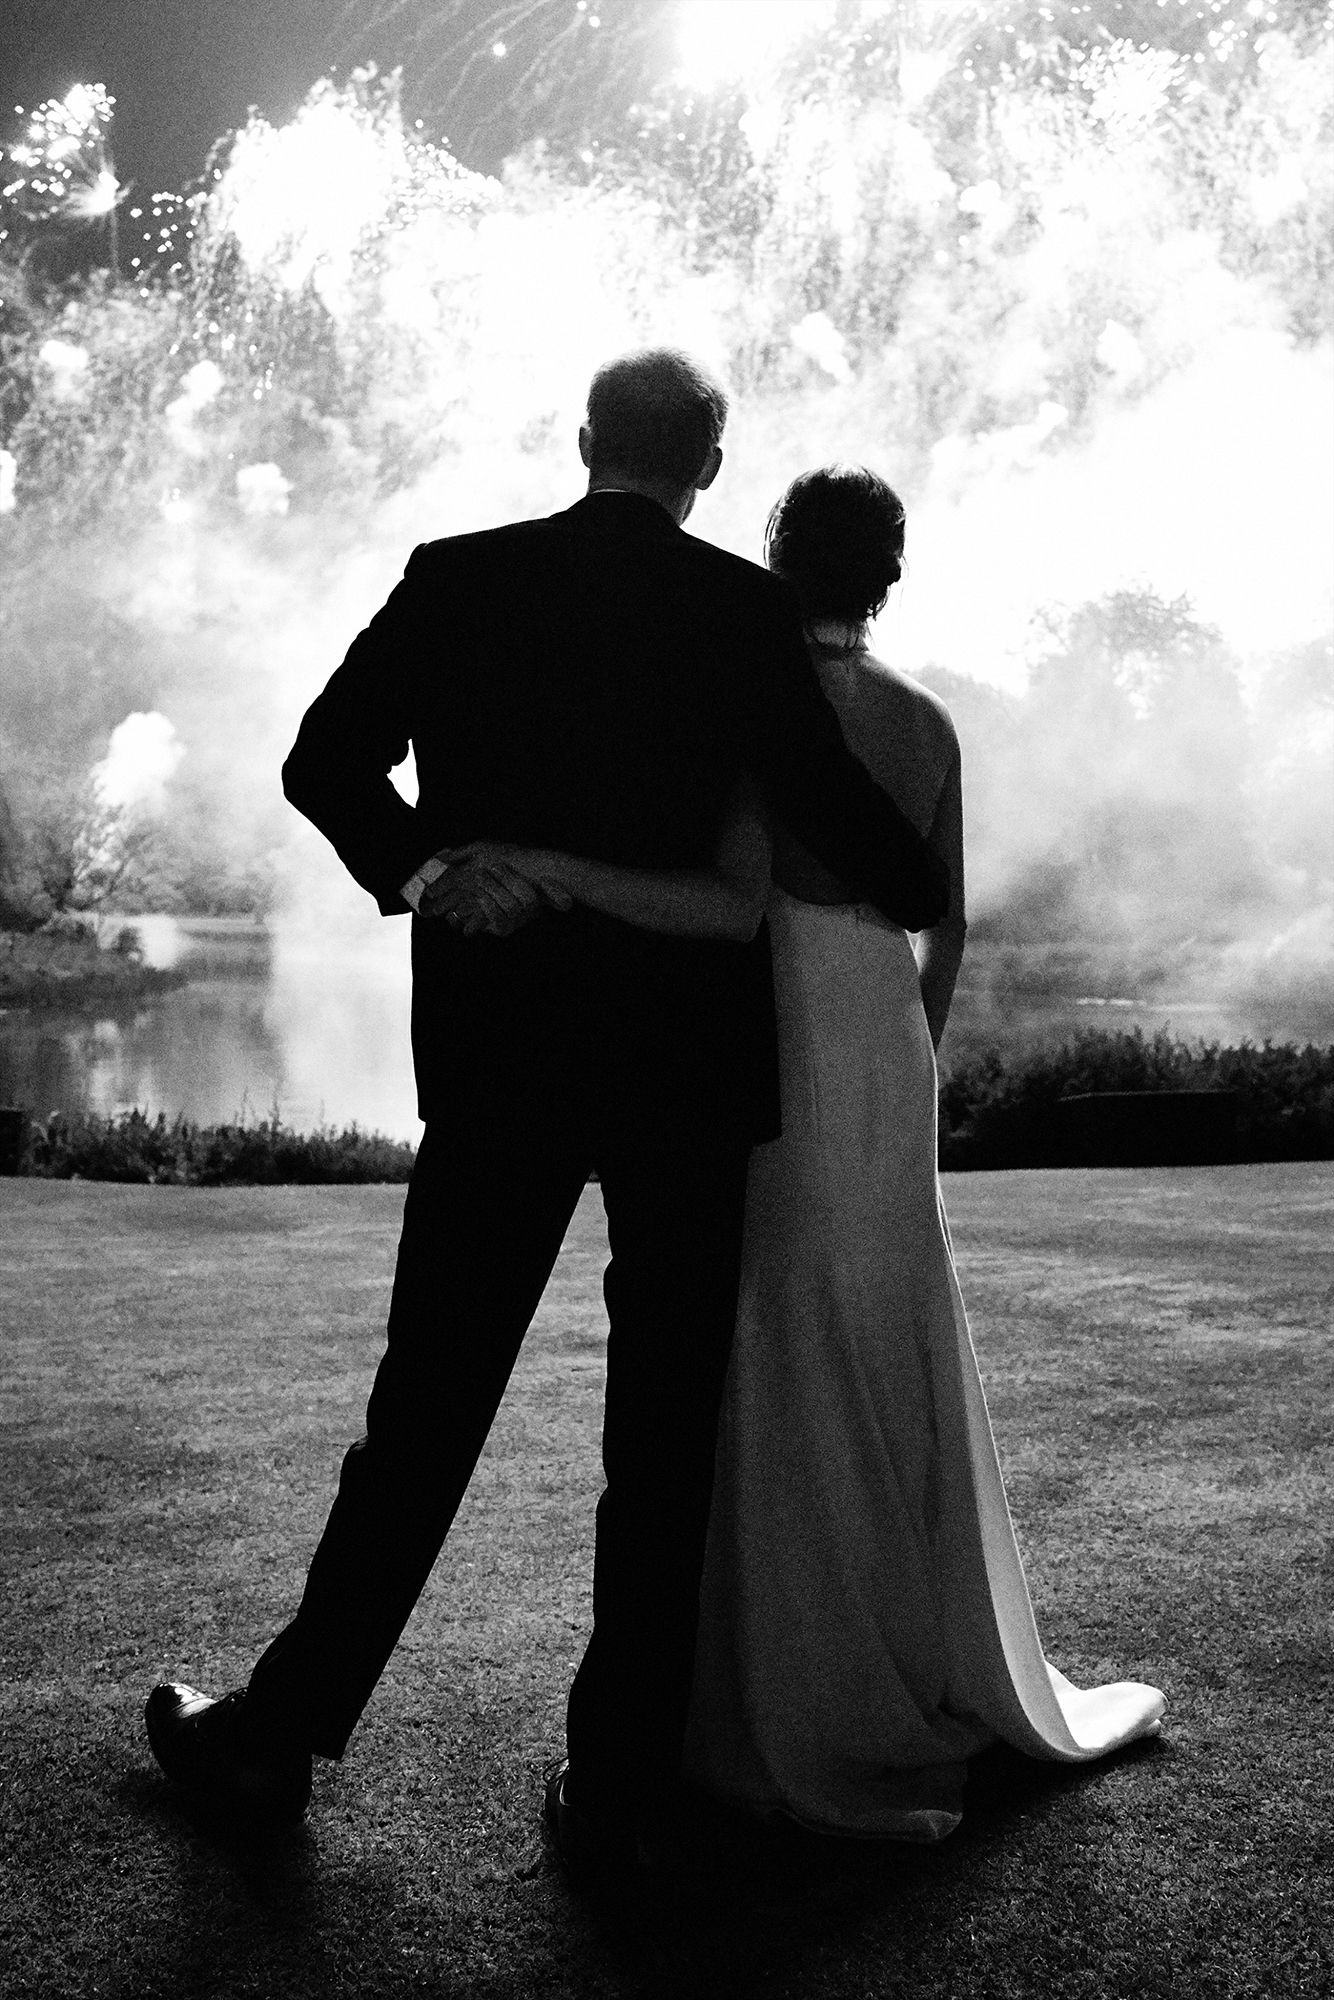 prince-william-kate-middleton-holiday-card-2018 - Harry and Meghan kicked off their first holiday season as a married couple by releasing an unseen photo of their nuptials in December 2018. In the sweet snap, the couple are watching fireworks from their wedding reception at Frogmore House.